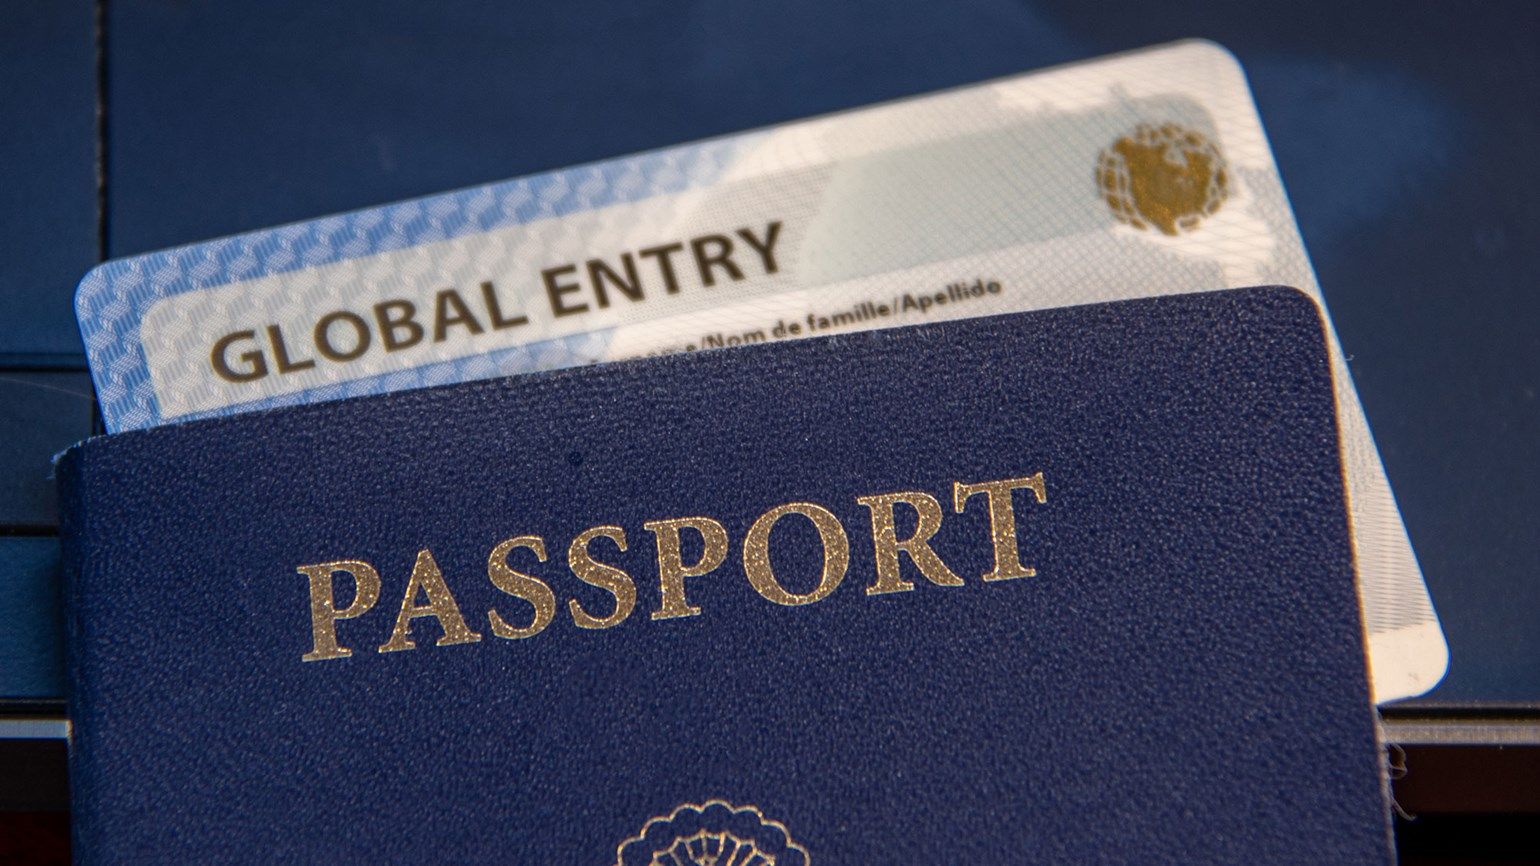 New York sues over White House's Global Entry ban